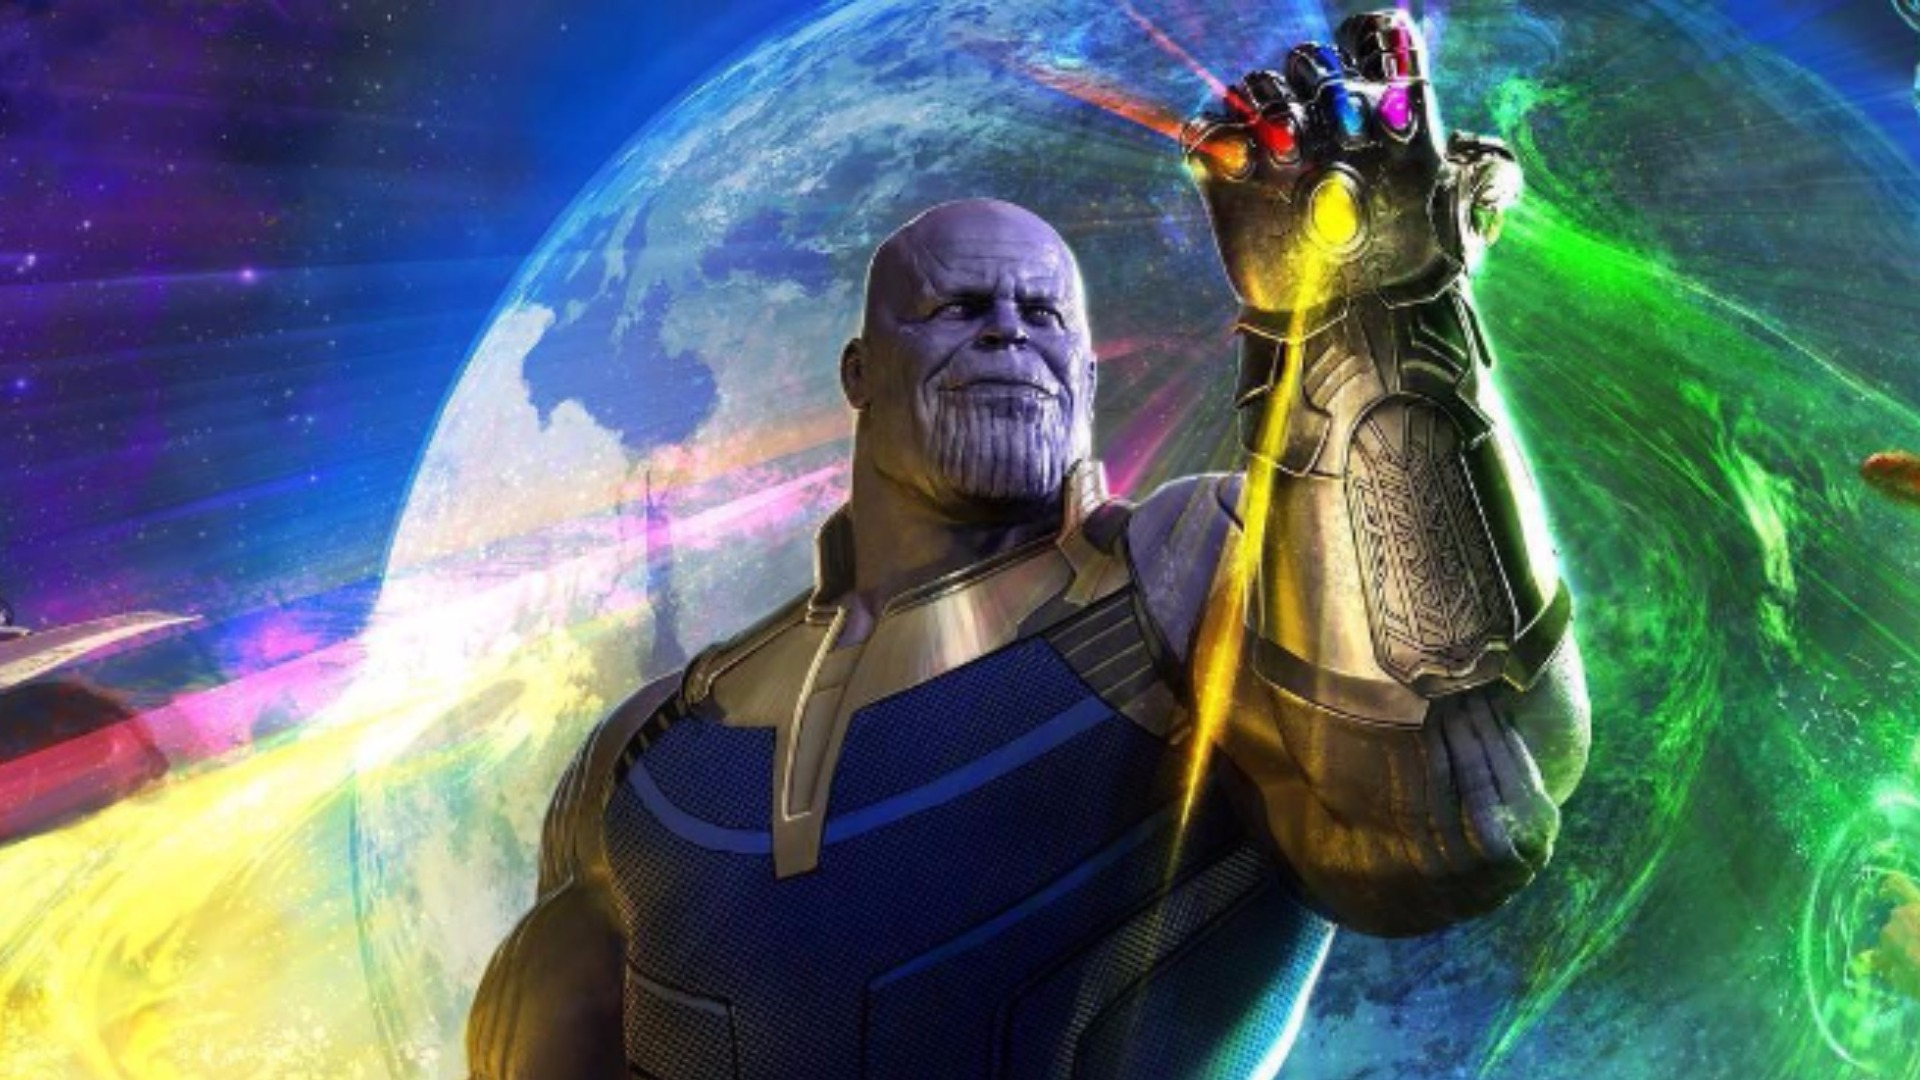 thanos has arrived in fortnite battle royale in the new limited time fortnite x avengers infinity war mashup event - fortnite limited time mashup